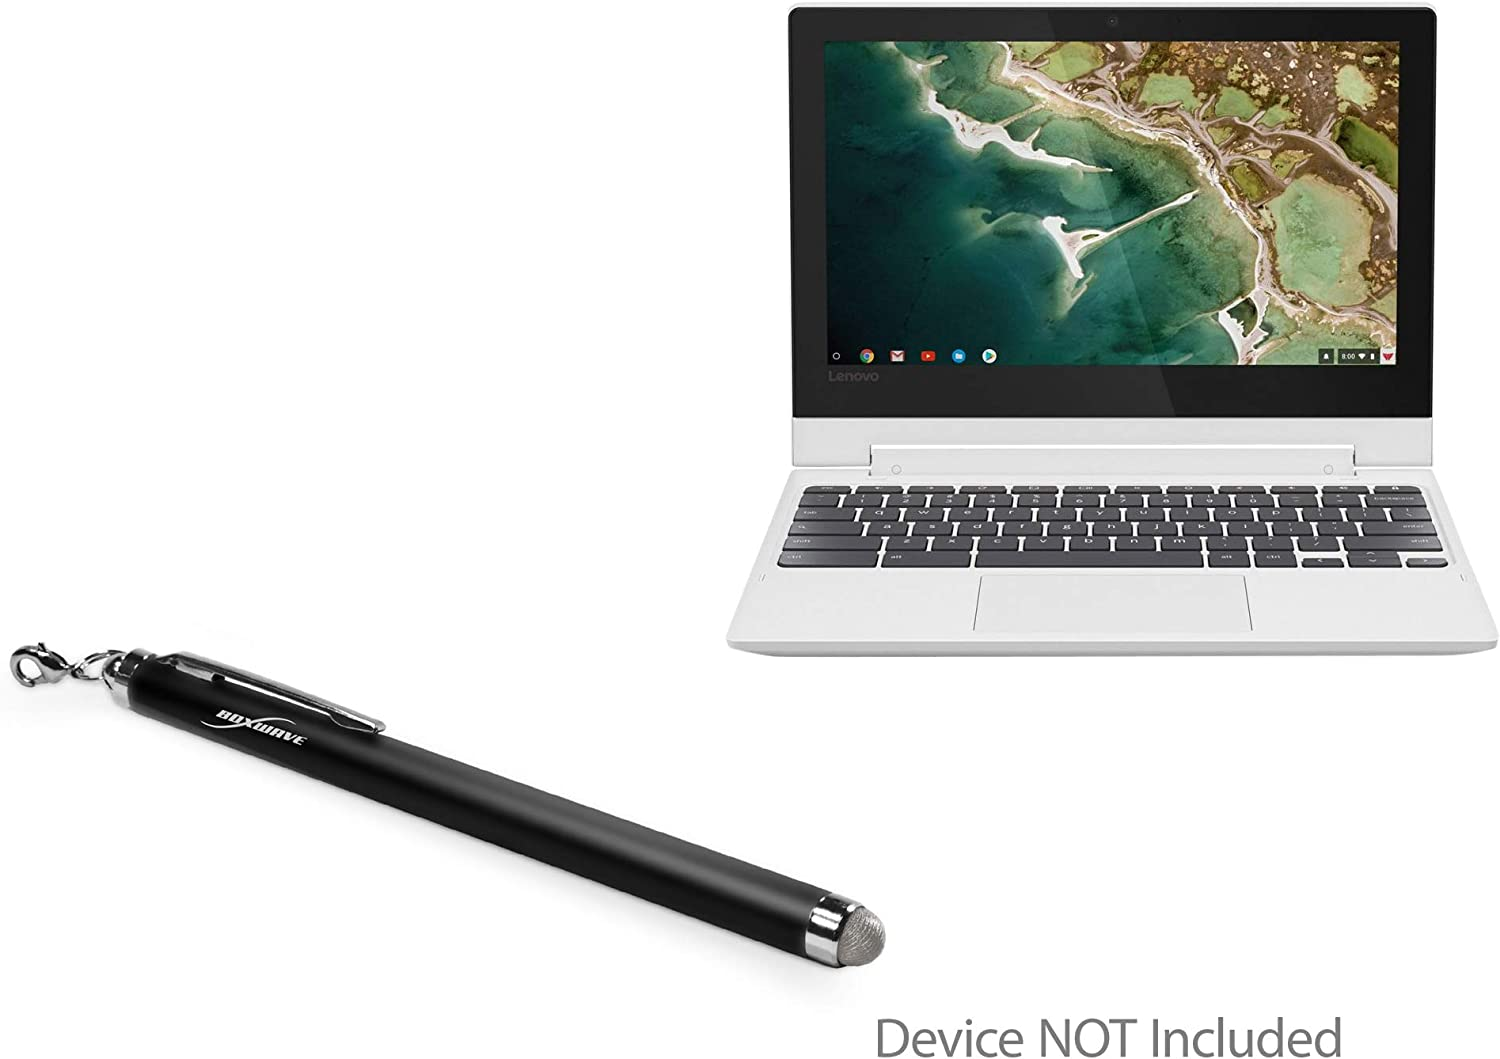 "Lenovo C330 Convertible 2-in-1 Chromebook (11.6"") Stylus Pen, BoxWave [EverTouch Capacitive Stylus] Fiber Tip Capacitive Stylus Pen for Lenovo C330 Convertible 2-in-1 Chromebook (11.6"") - Jet Black"